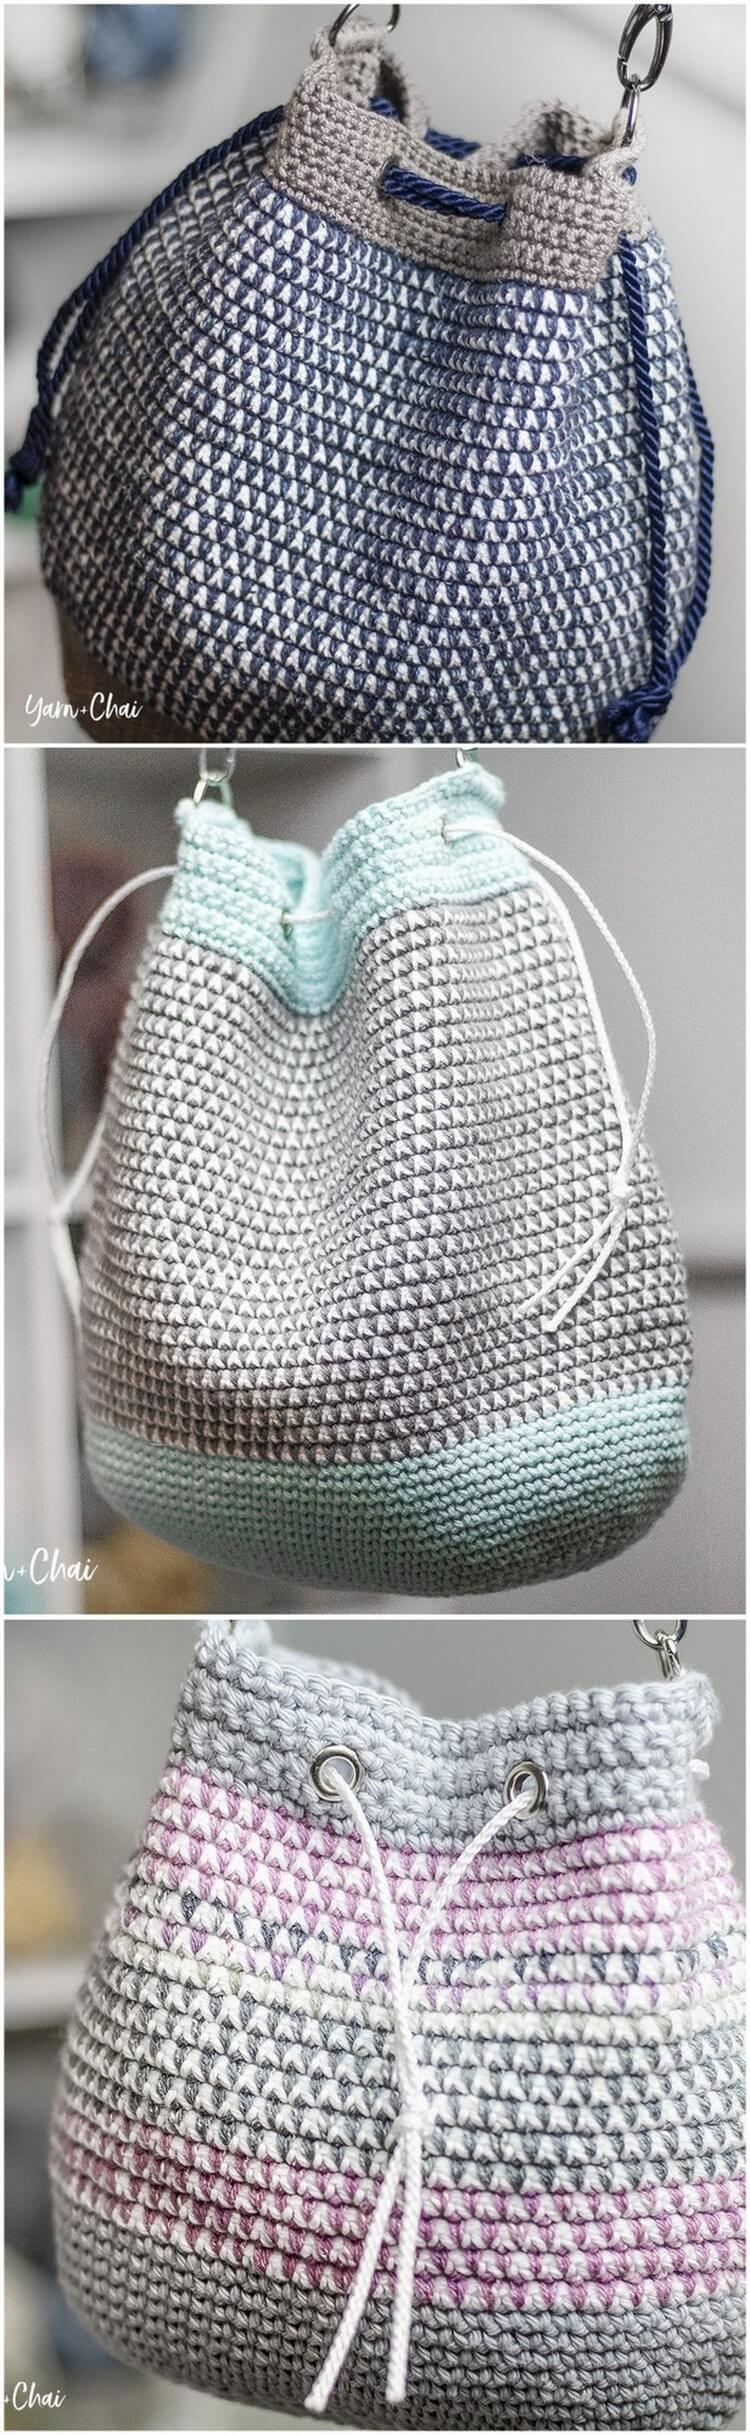 Crochet Backpack Pattern (22)